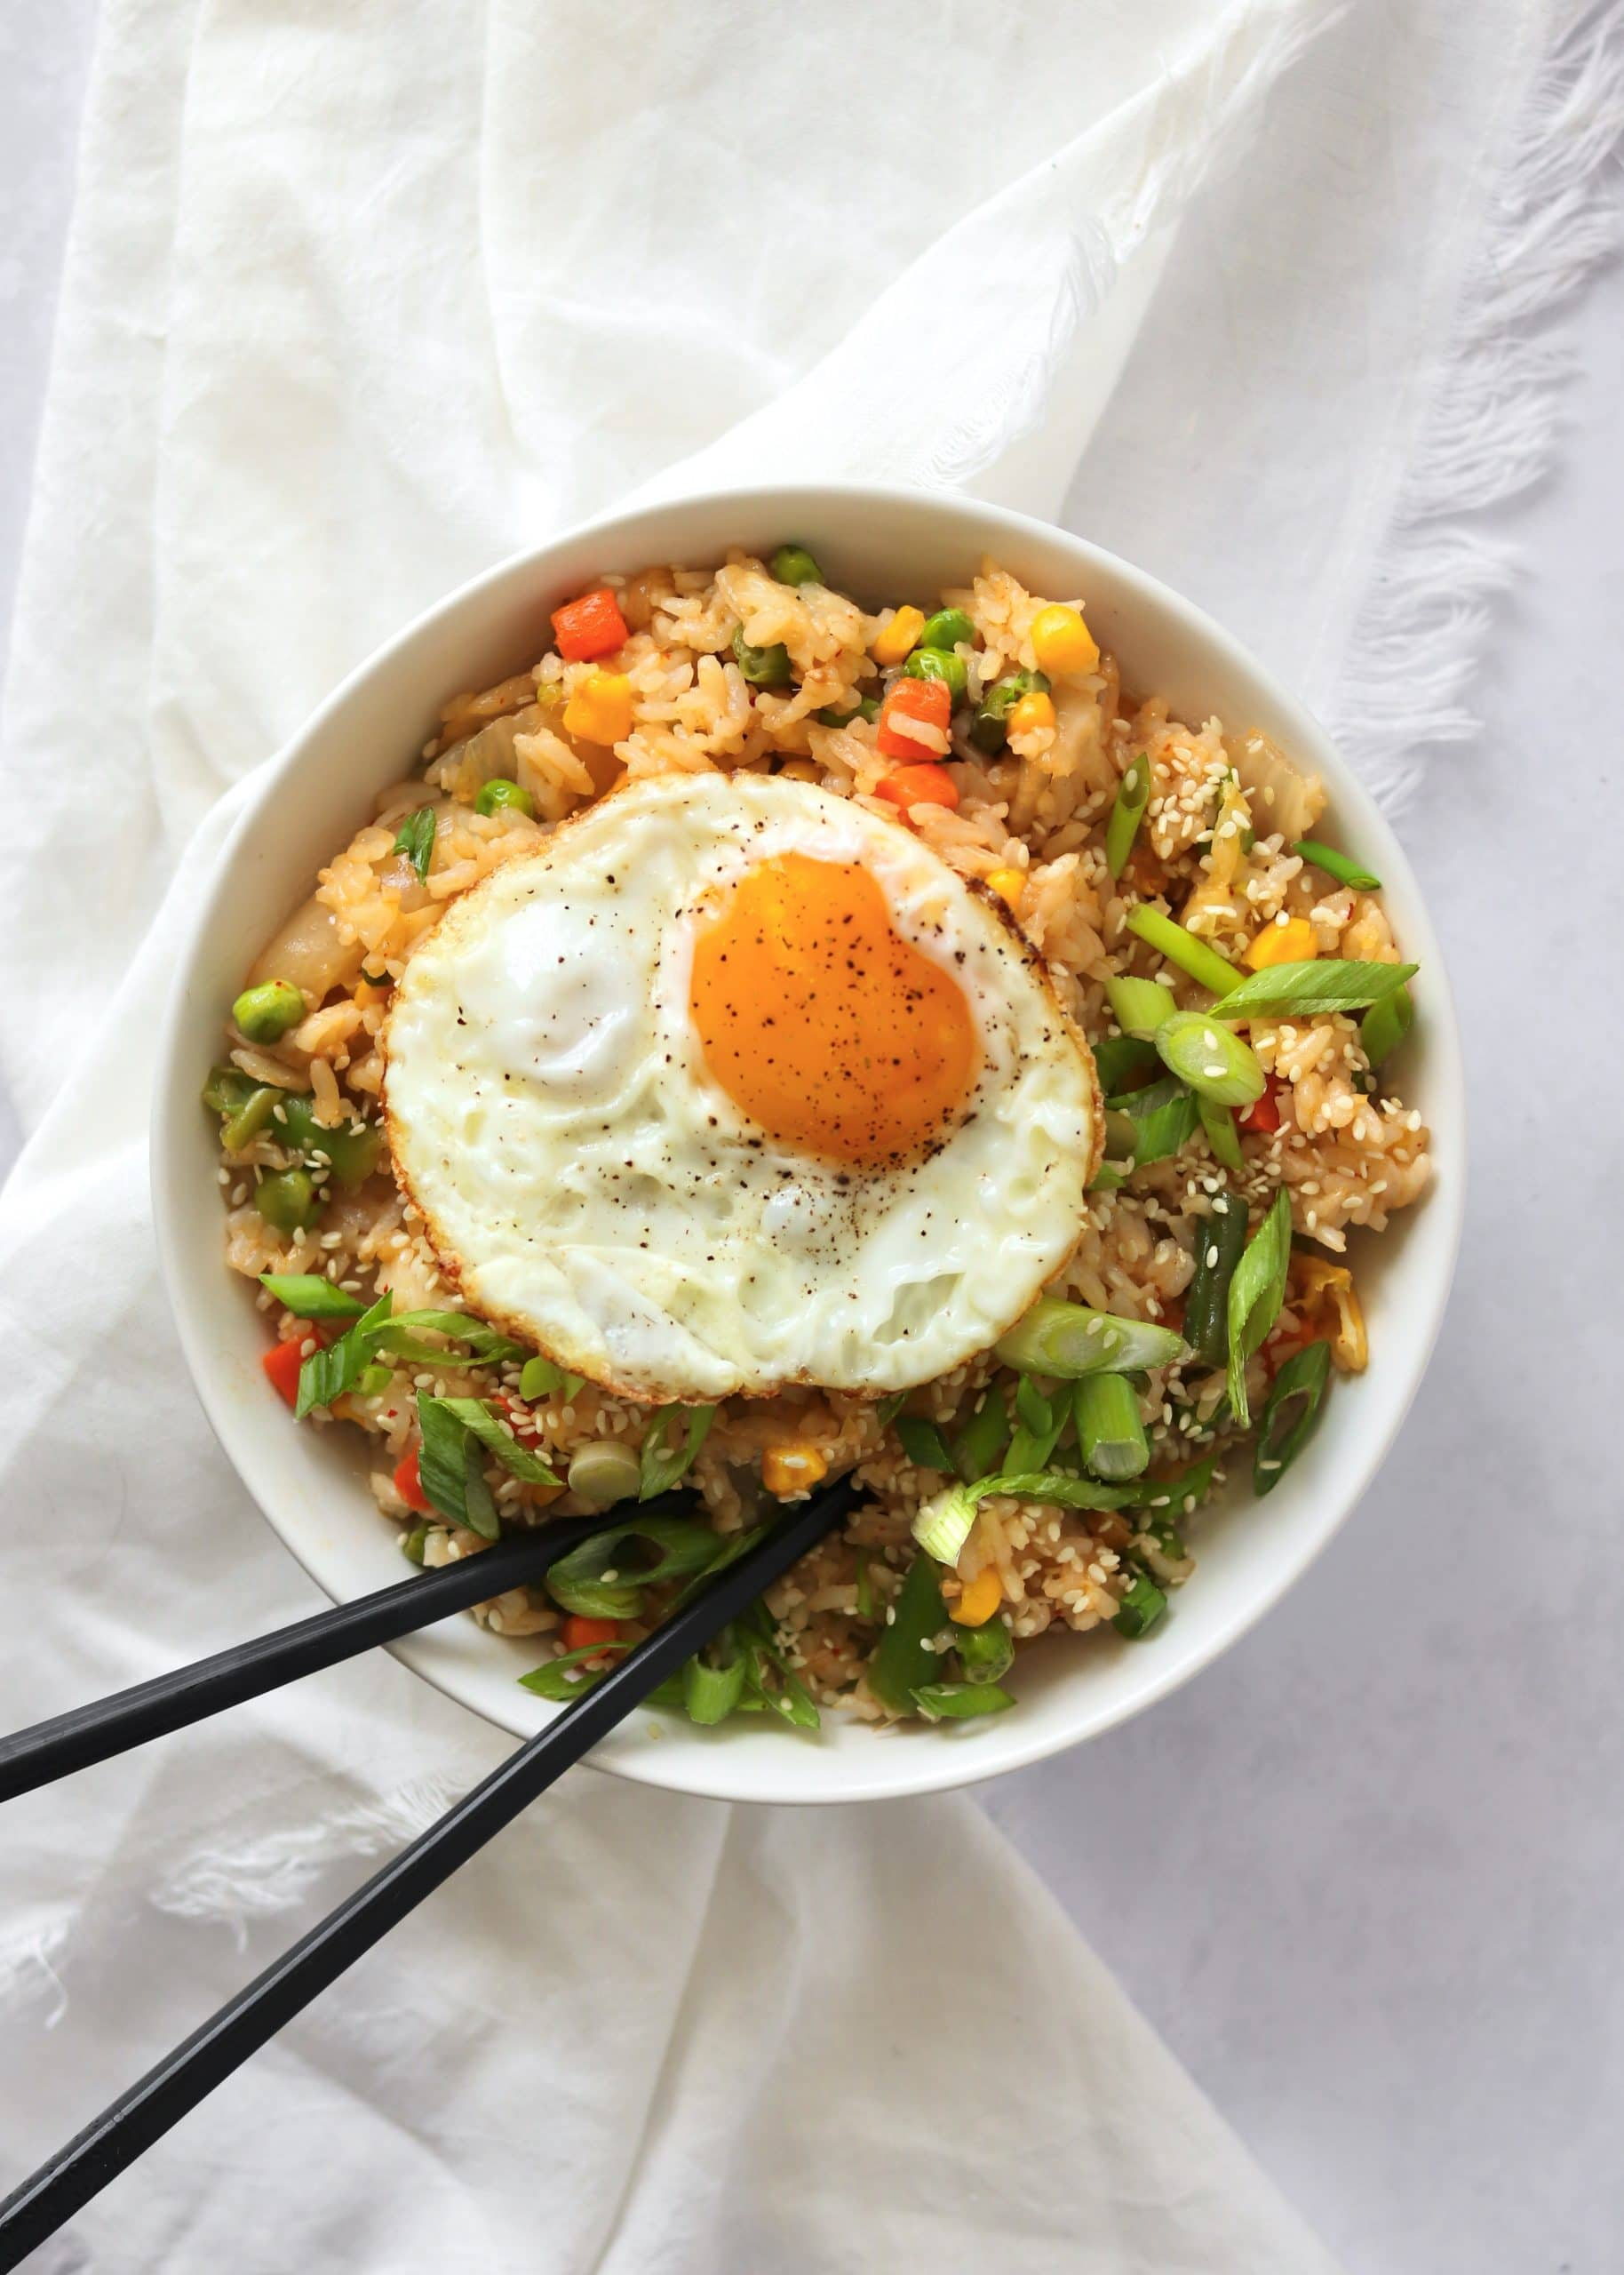 Kimchi fried rice with fried egg on top